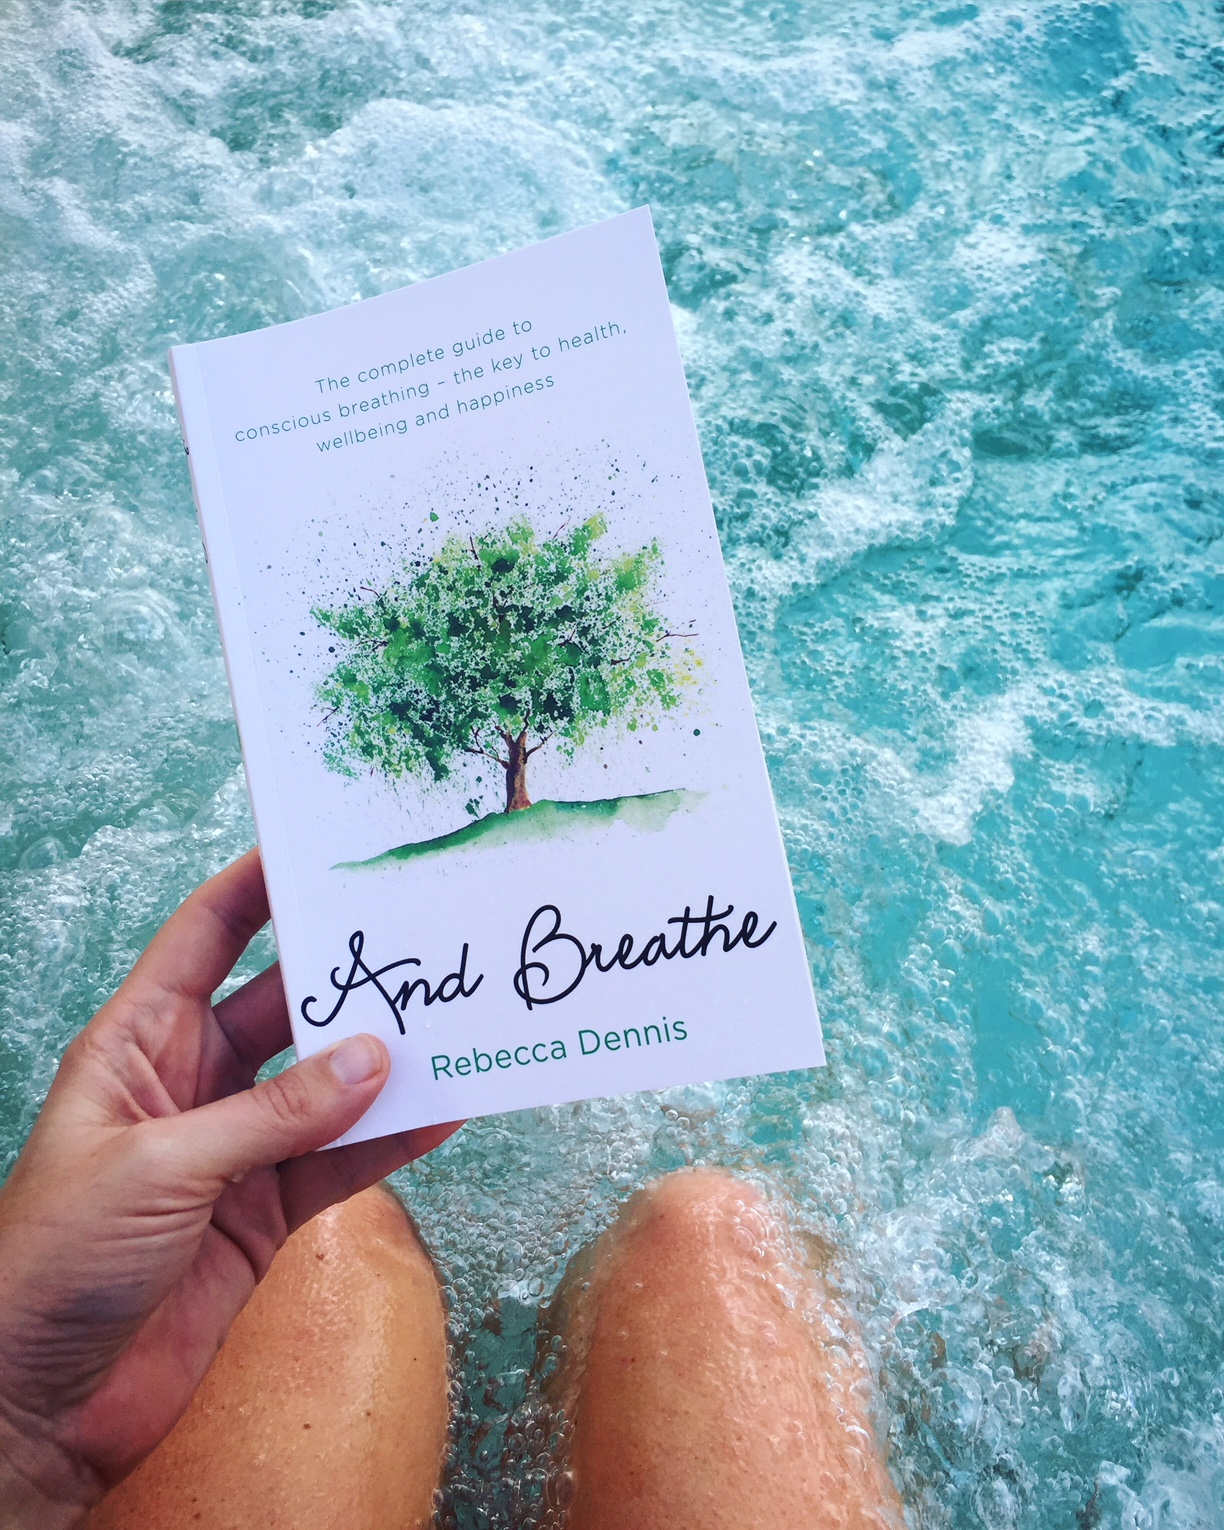 DO try this at home (or even in a hot tub): And Breathe is a guide to conscious breathing from Transformational Breath coach Rebecca Dennis